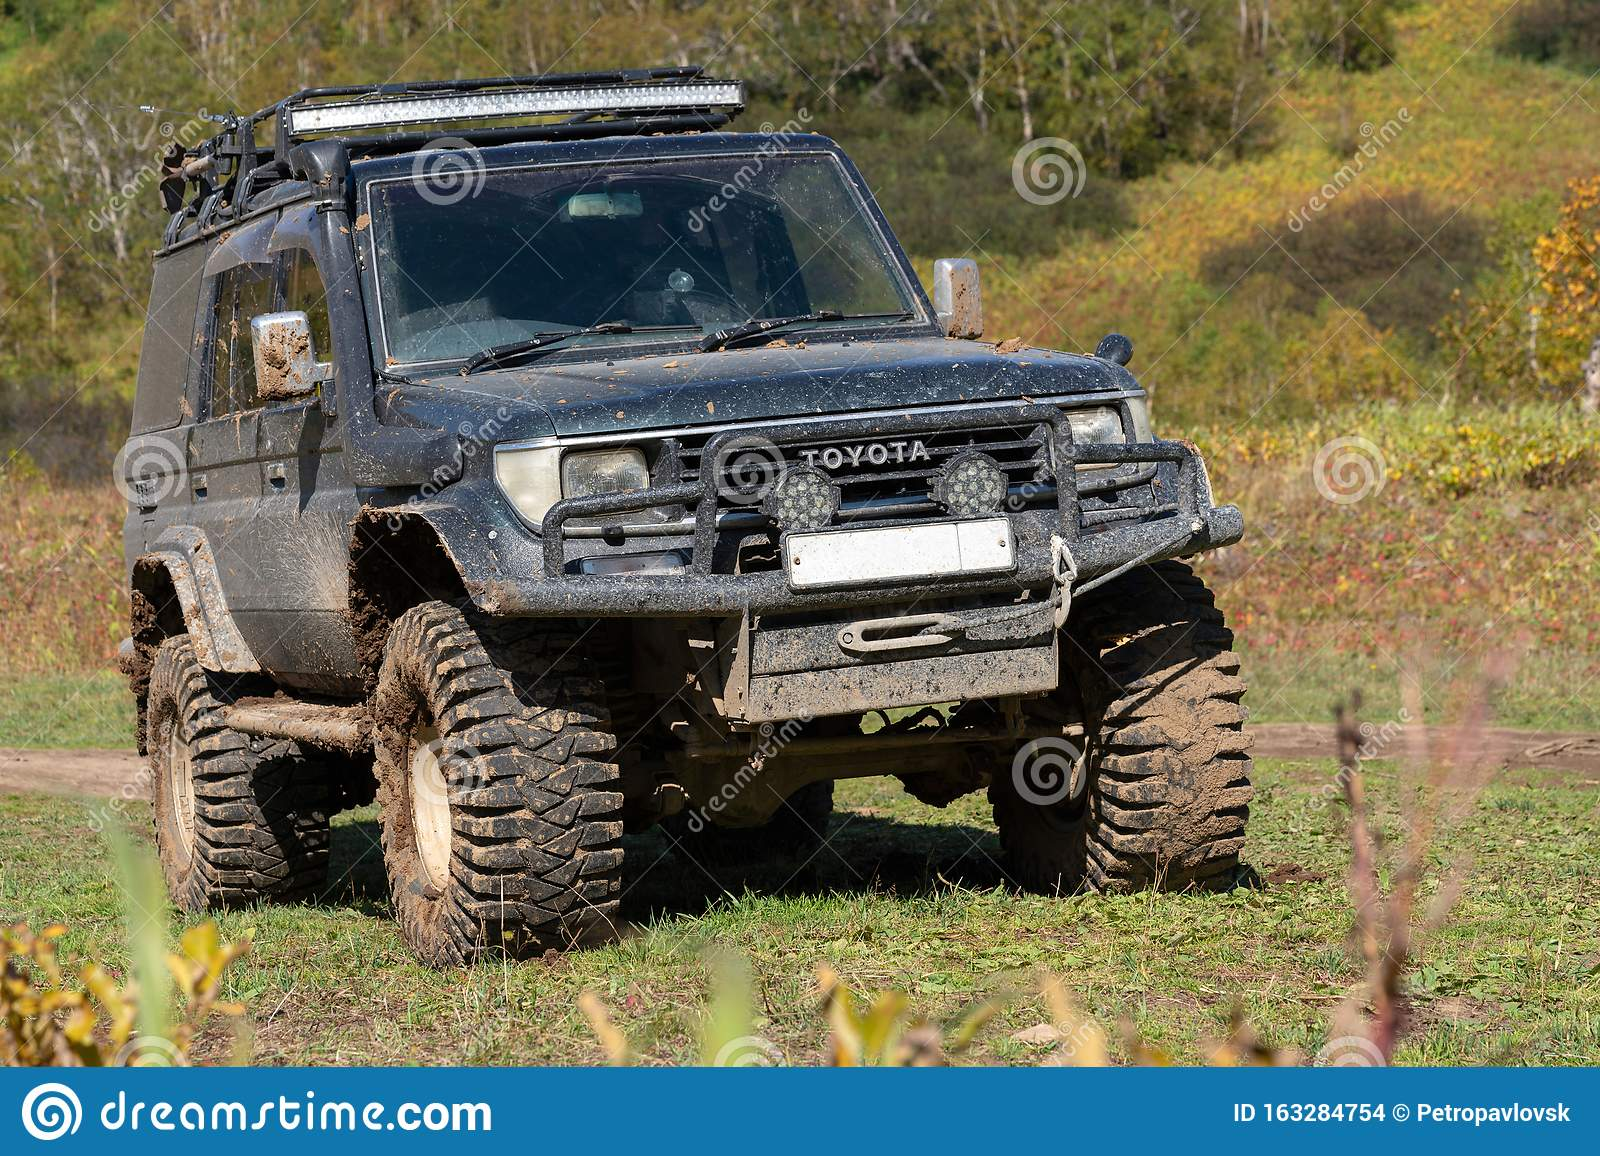 toyota land cruiser prado off road expedition truck on autumn forest landscape editorial stock image image of drive offroad 163284754 https www dreamstime com toyota land cruiser prado off road expedition truck autumn forest landscape toyota land cruiser prado japanese extreme off road image163284754